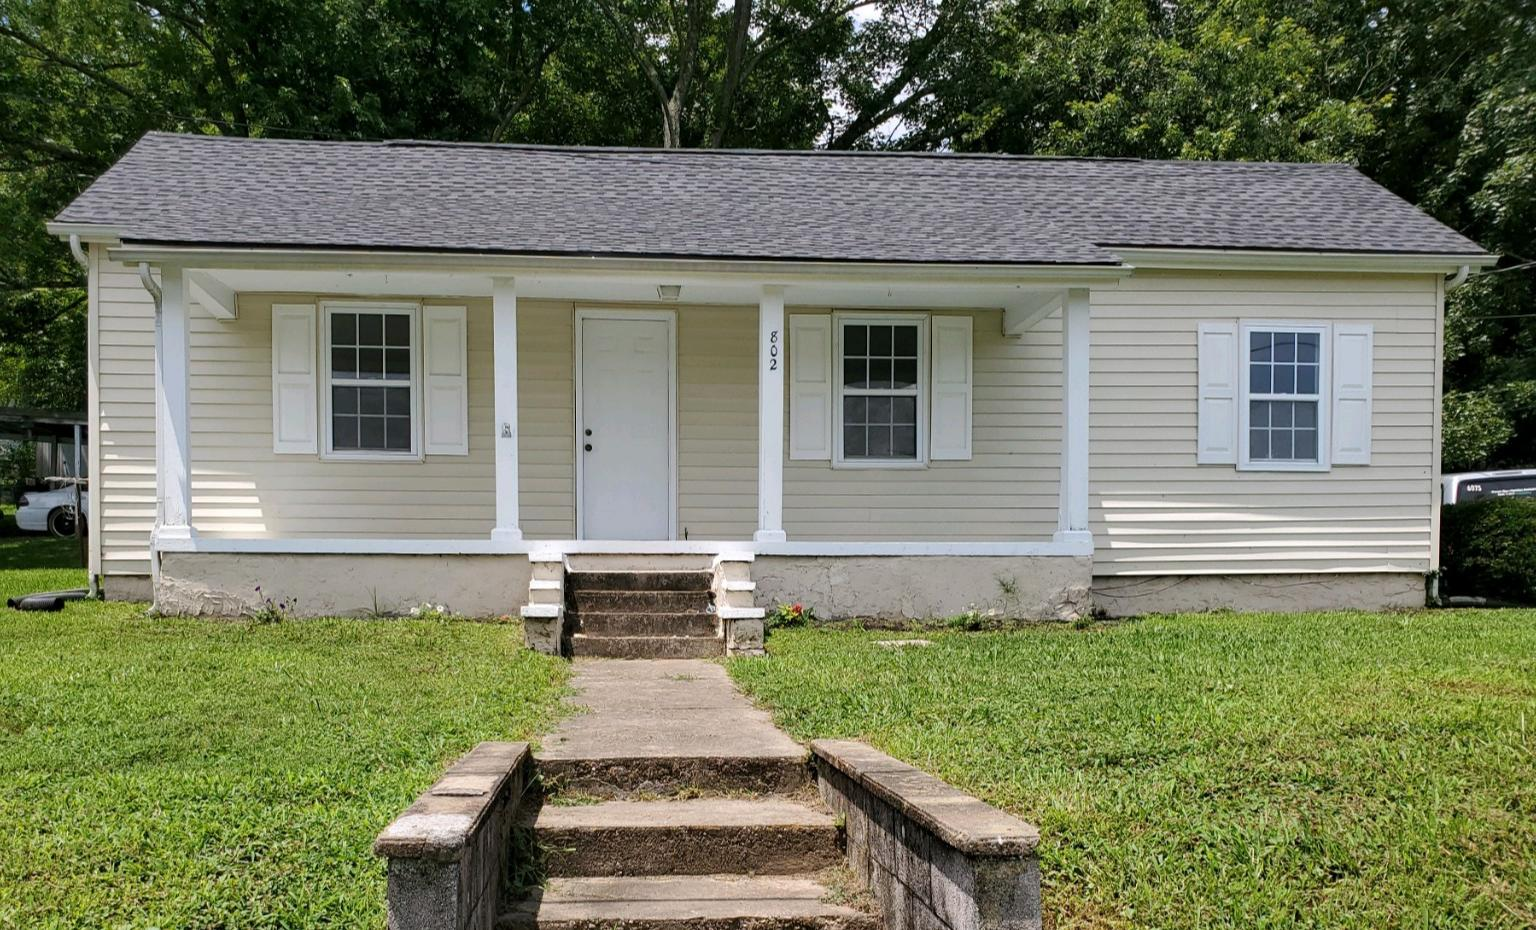 20190725202117101432000000-o Clinton anderson county homes for sale